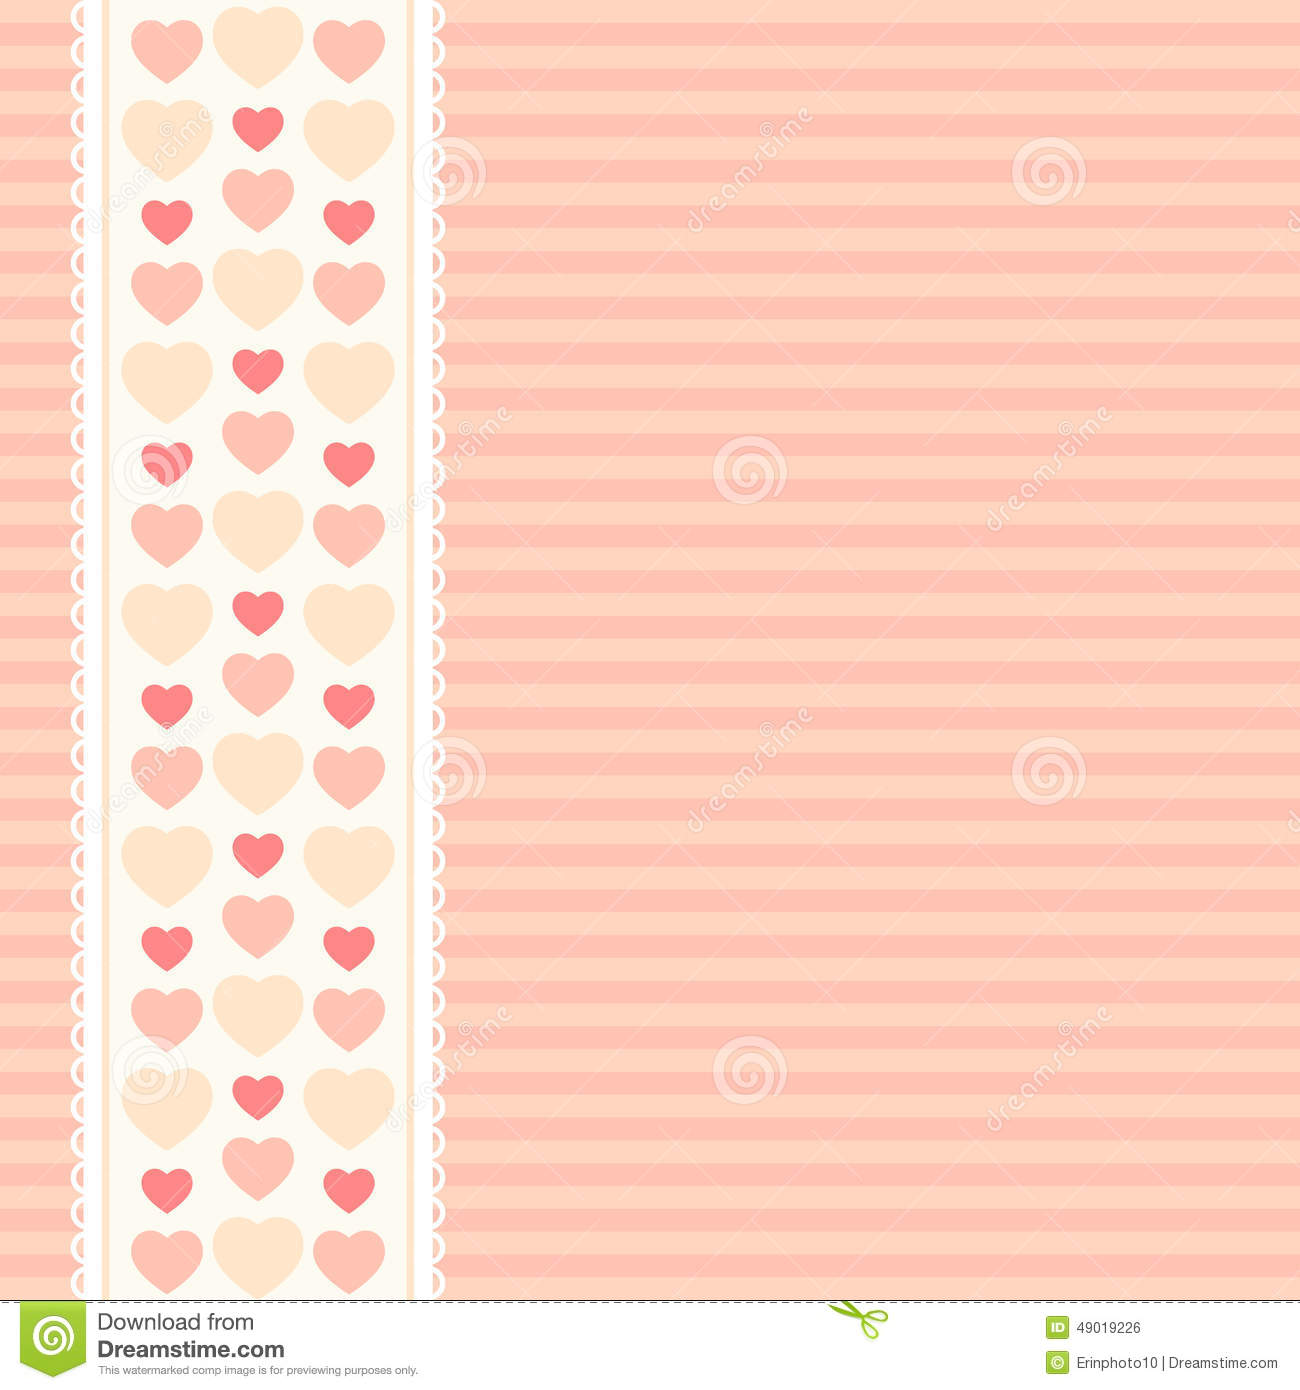 Cute Hearts Pattern As Retro Textile Ribbon With Heartson Striped Background In Shabby Chic Style